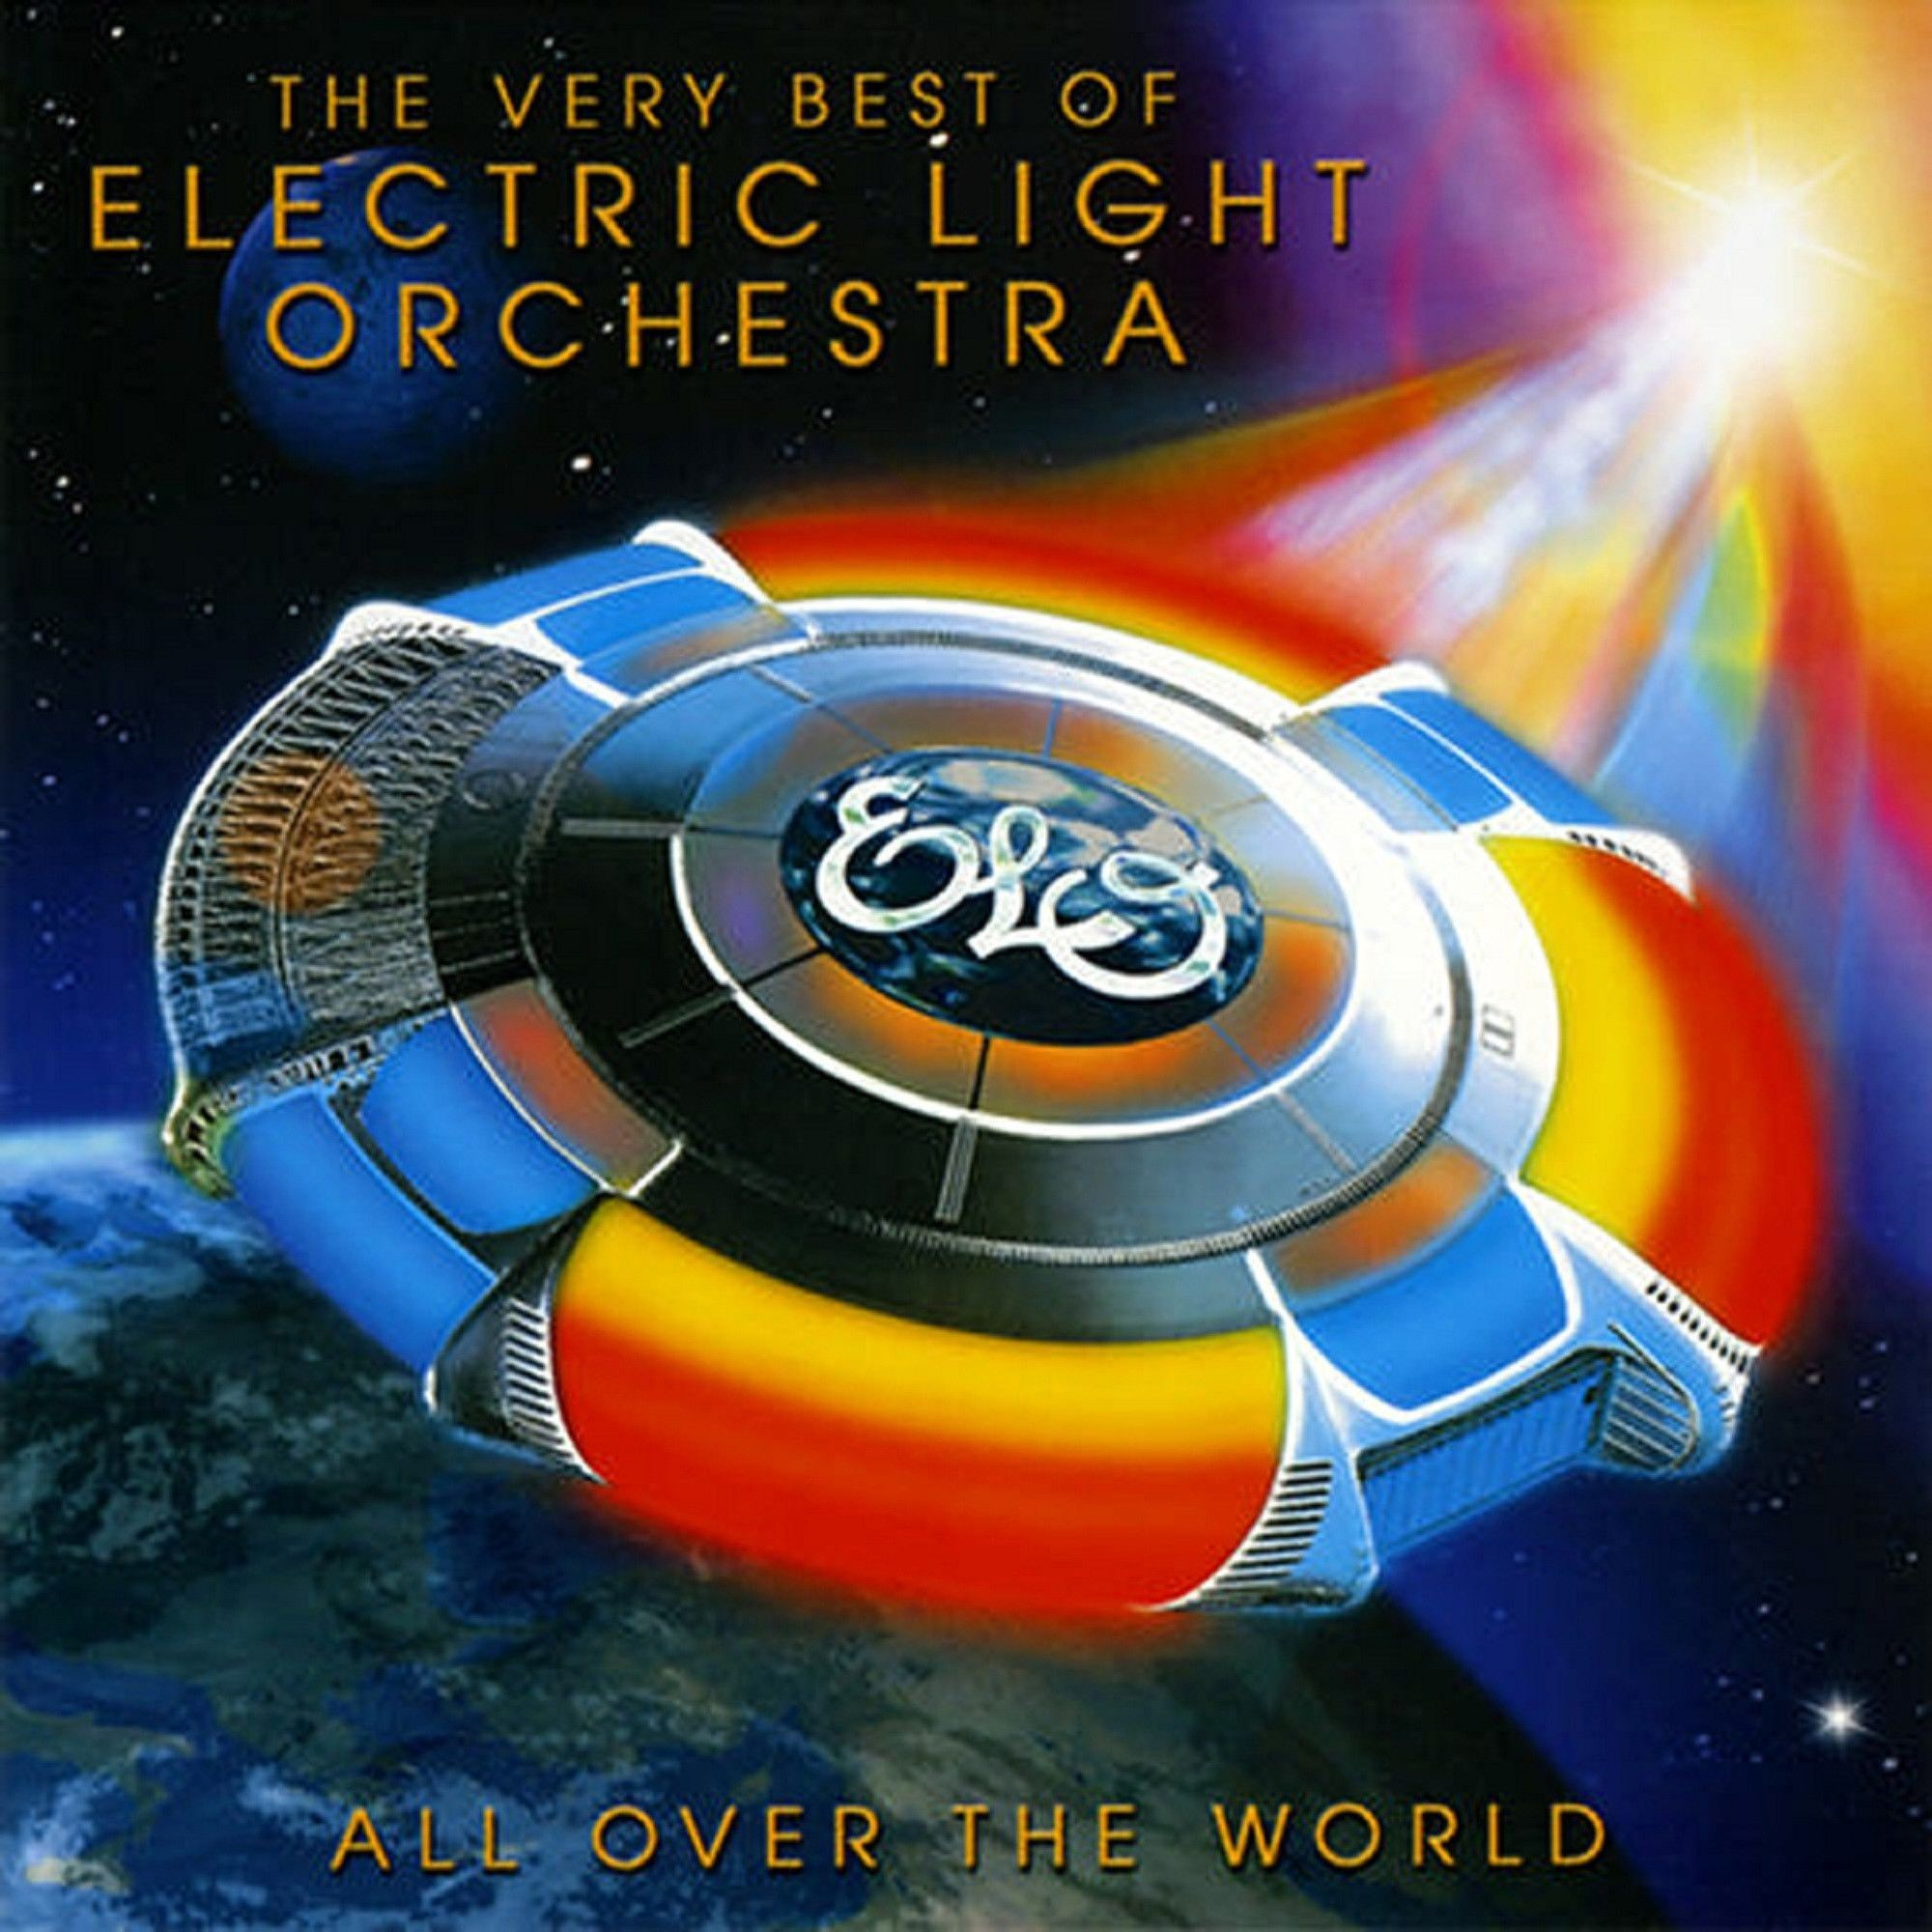 2000x2000 All Over the World: The Very Best of Electric Light Orchestra (2005)